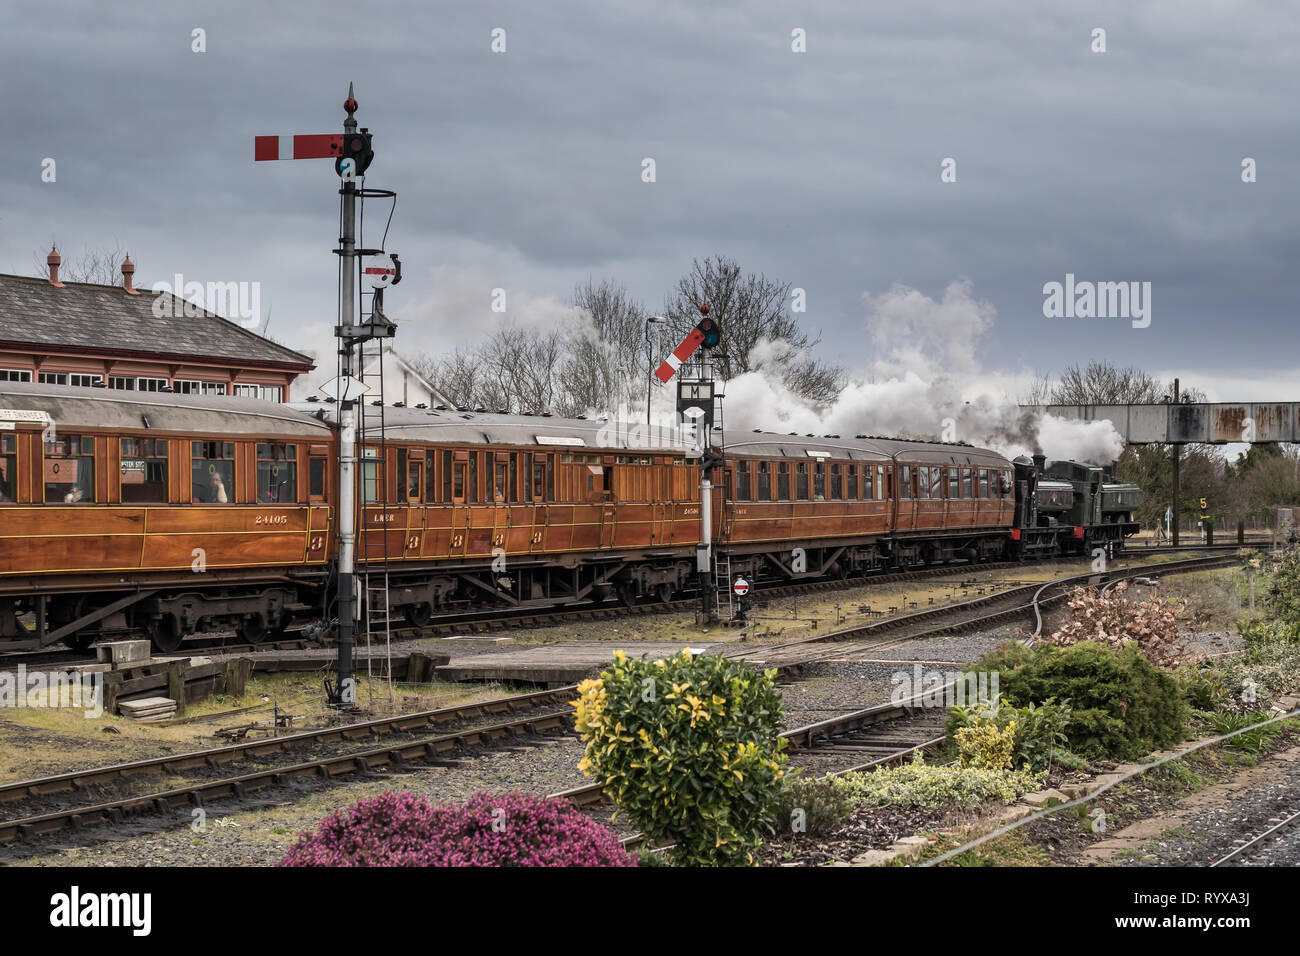 Landscape, side view of vintage steam train leaving Kidderminster SVR station pulled by two vintage UK steam locomotives double-heading at the front. - Stock Image